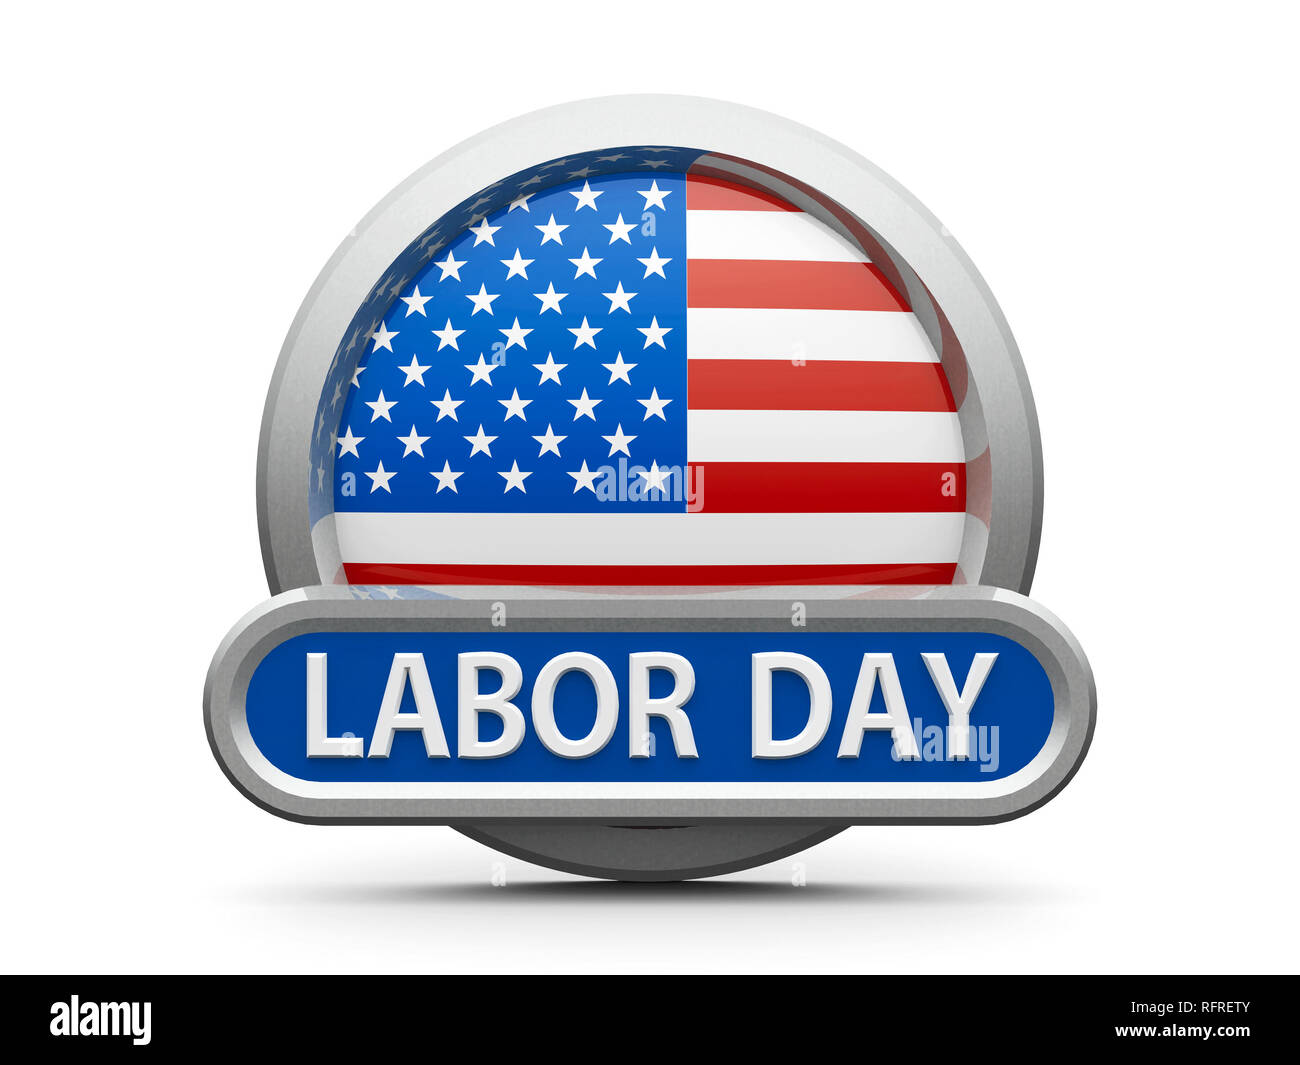 Emblem, icon or button with american flag represents Labor Day in USA, isolated on white background, three-dimensional rendering, 3D illustration - Stock Image